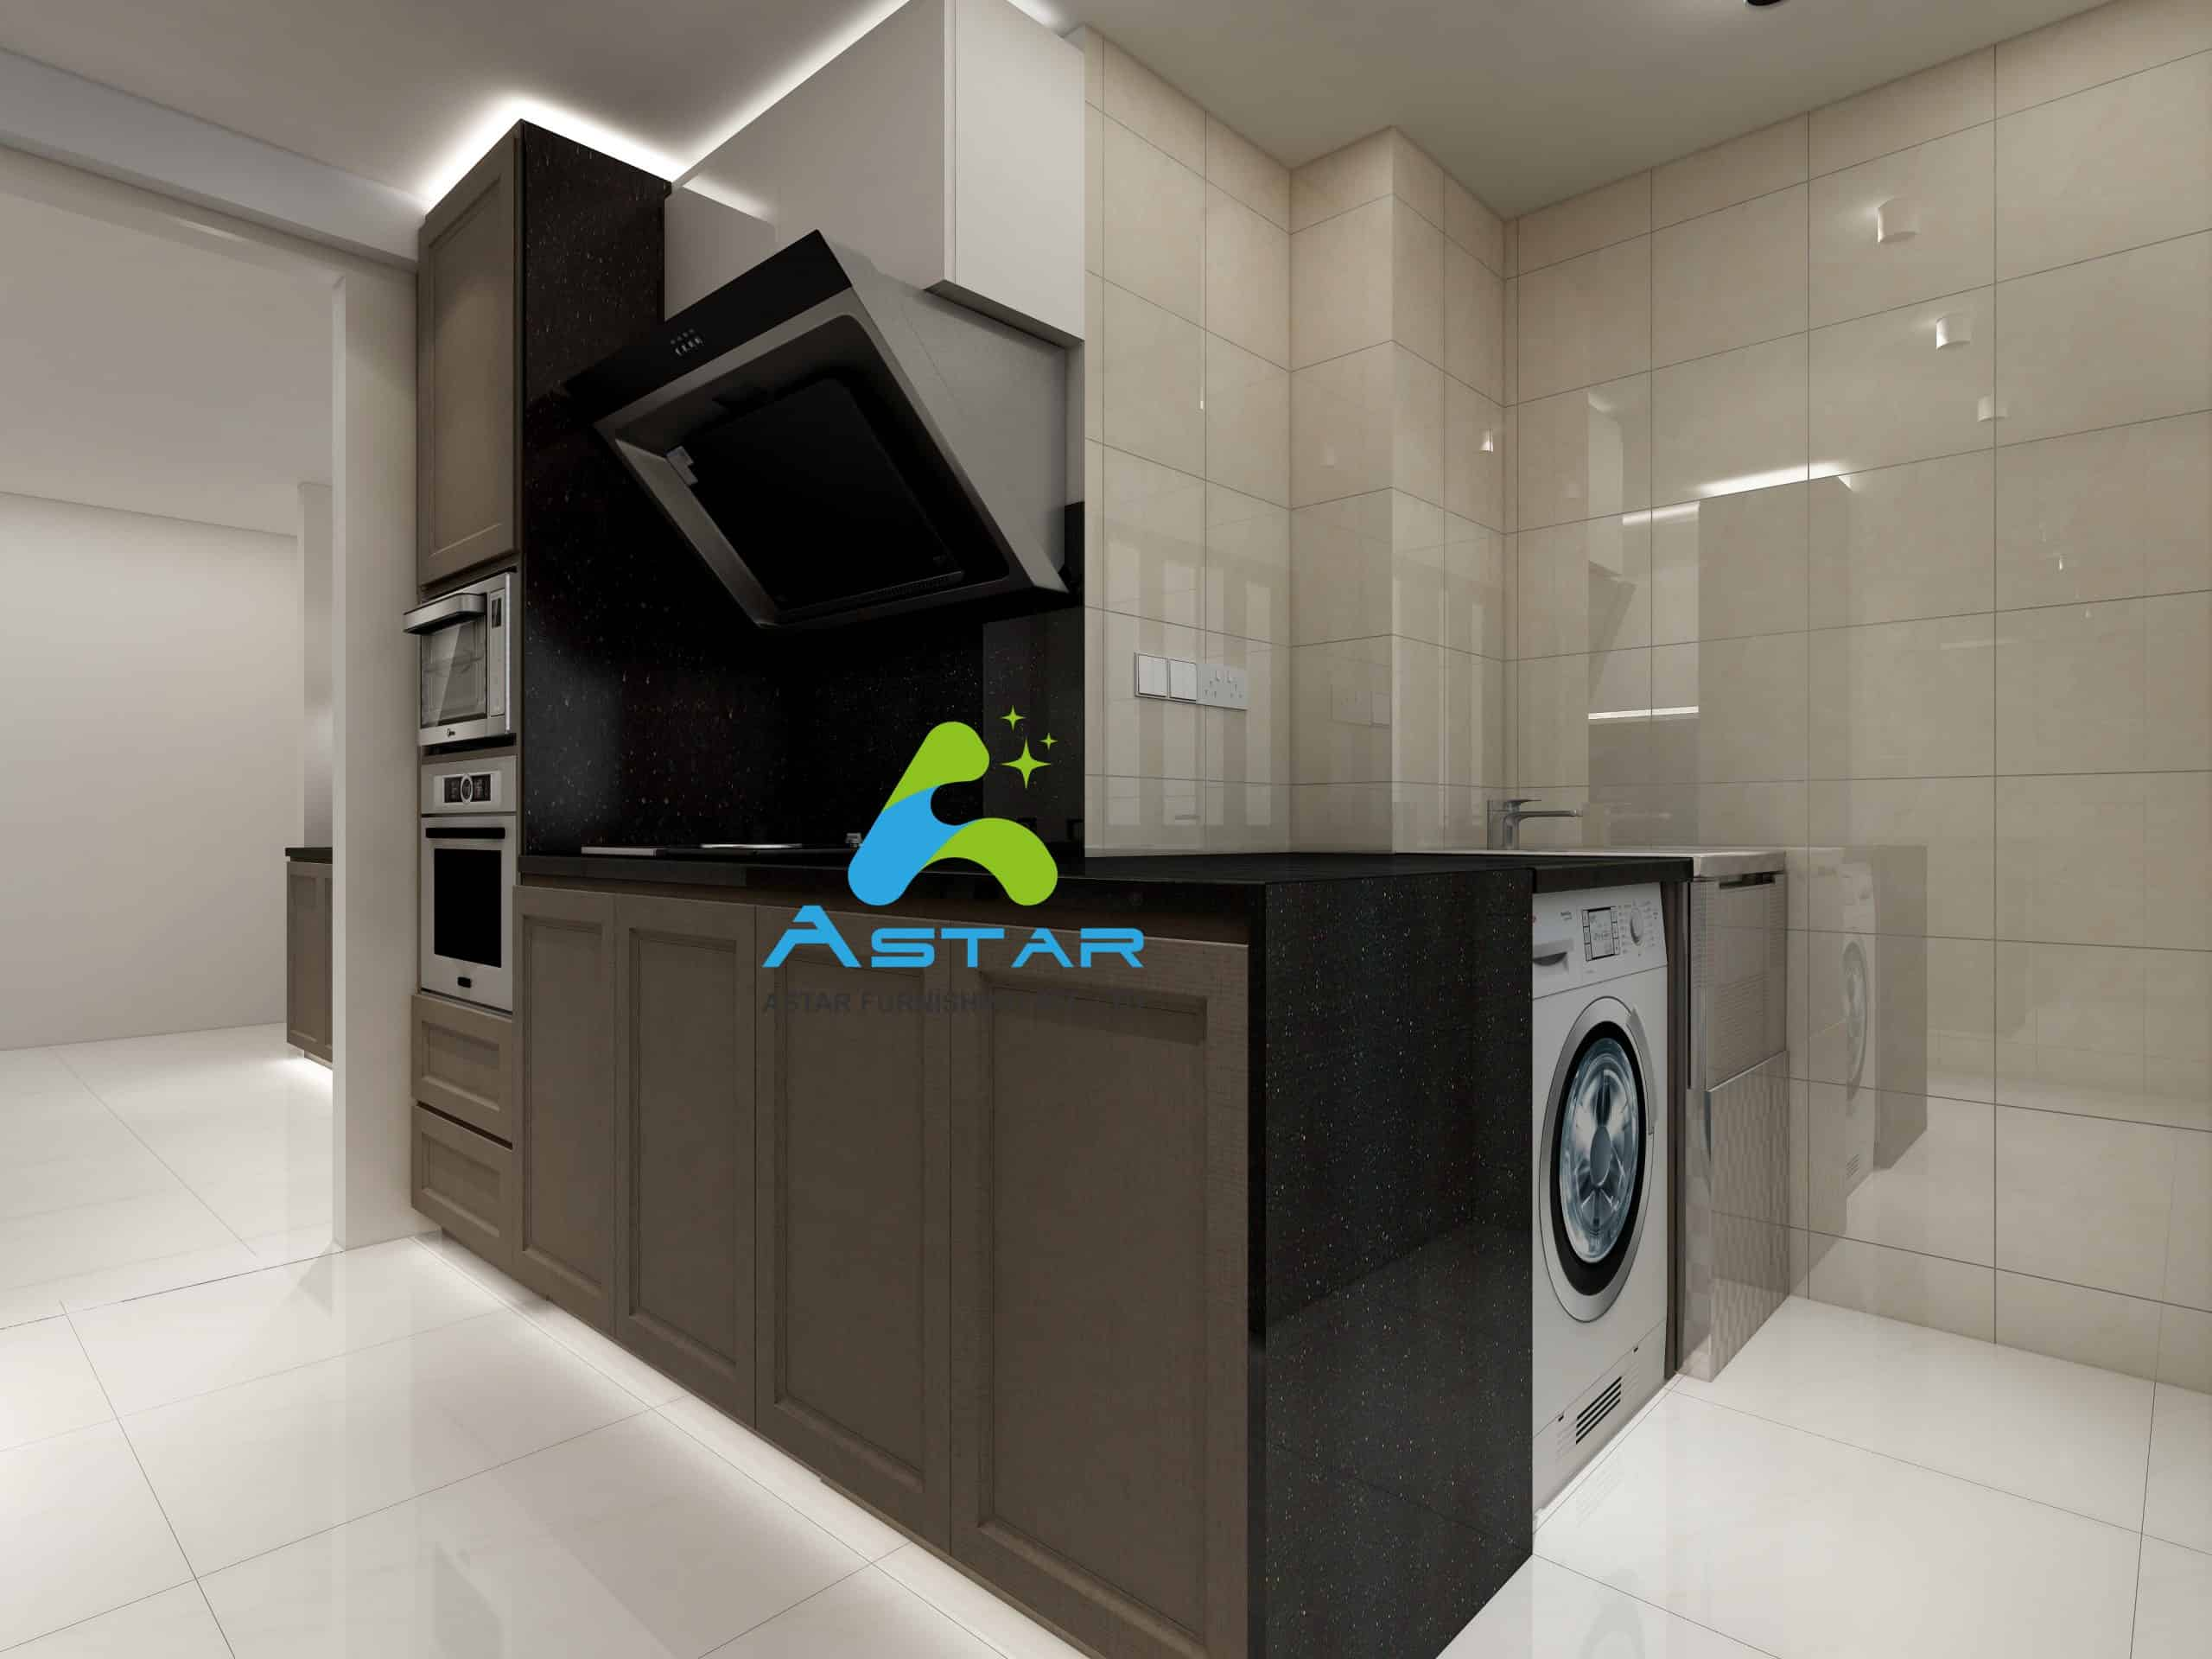 a star furnishing aluminium projects 20. Blk 830 Woodlands st 83 025 scaled